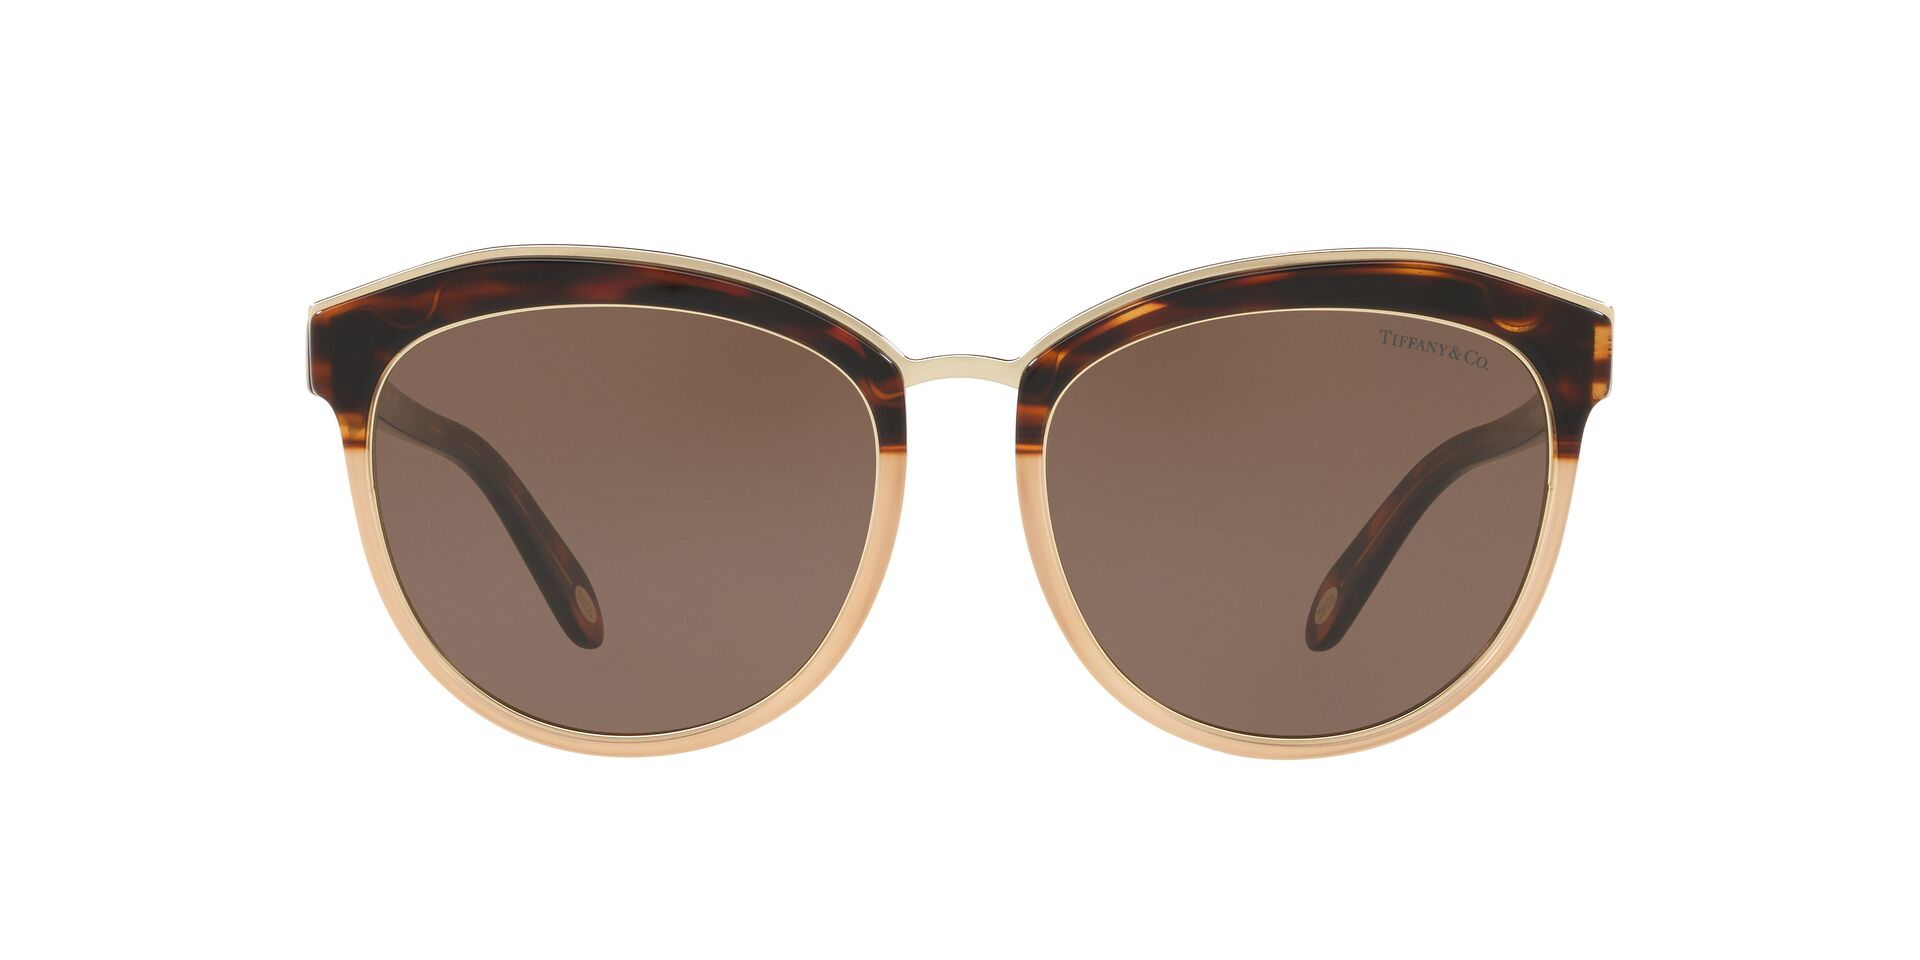 Tiffany - TF4146 Brown Oval Women Sunglasses - 56mm-Sunglasses-Designer Eyes